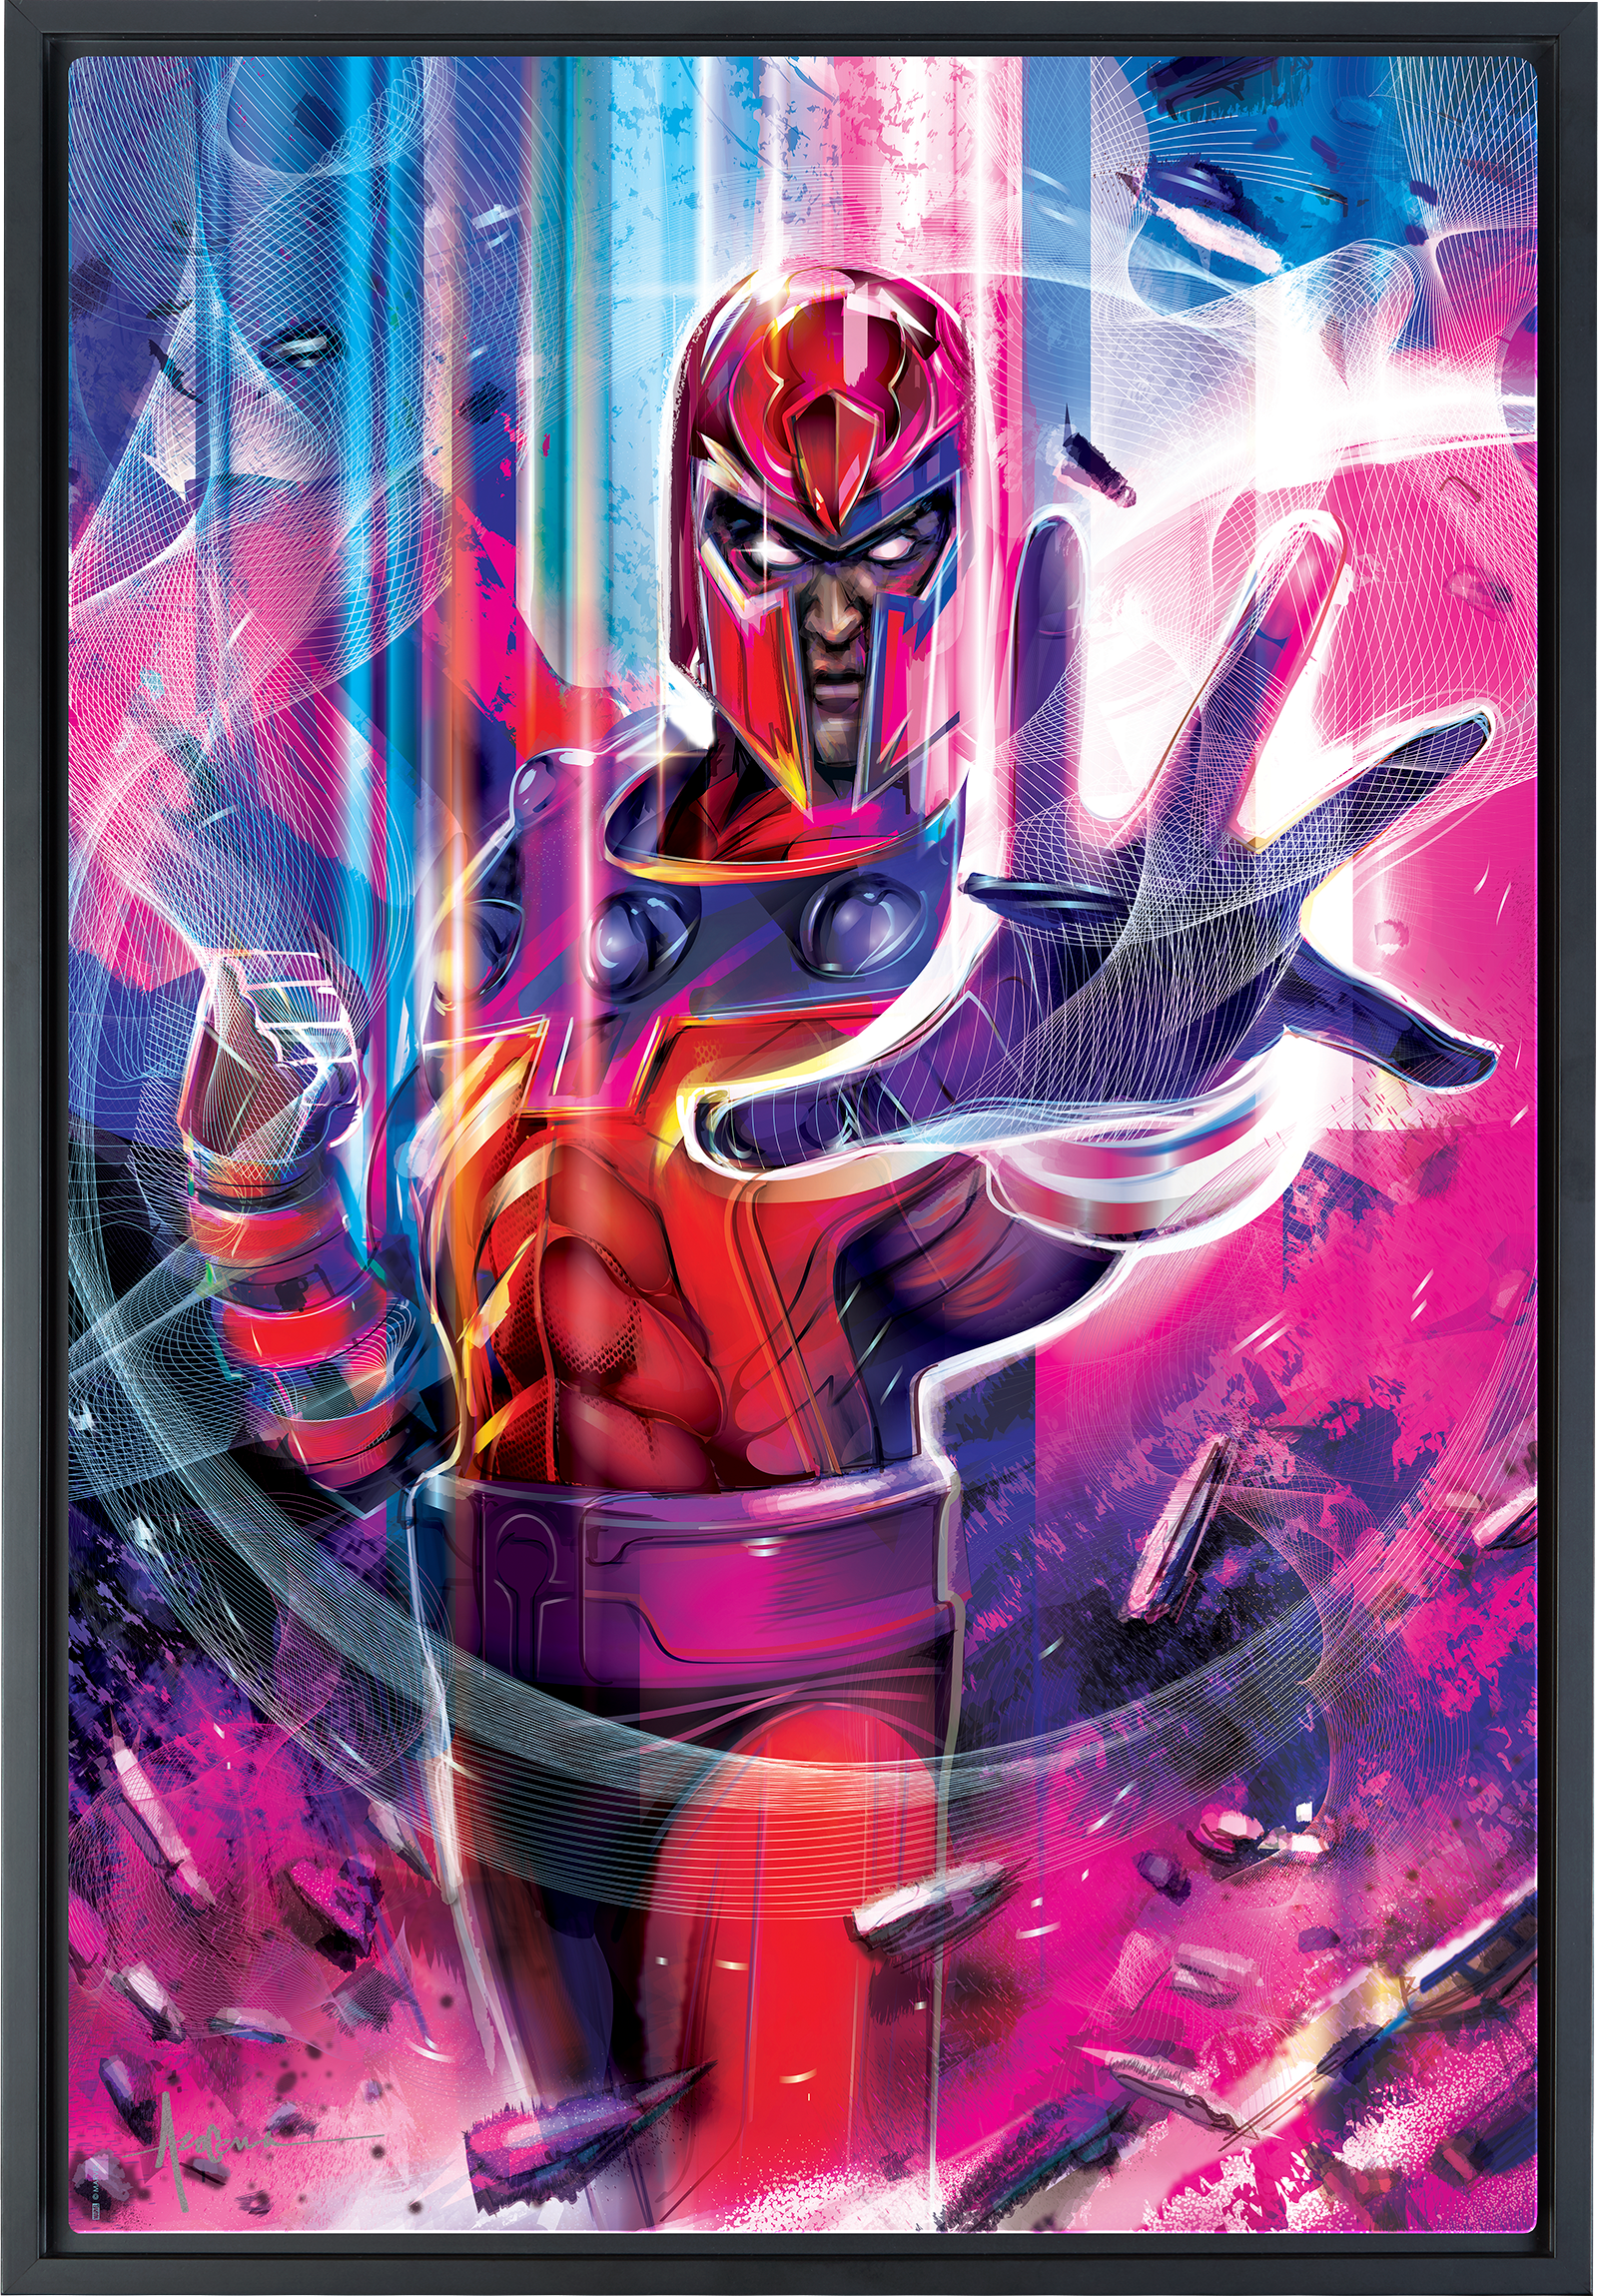 Sideshow Collectibles Magneto Art Print